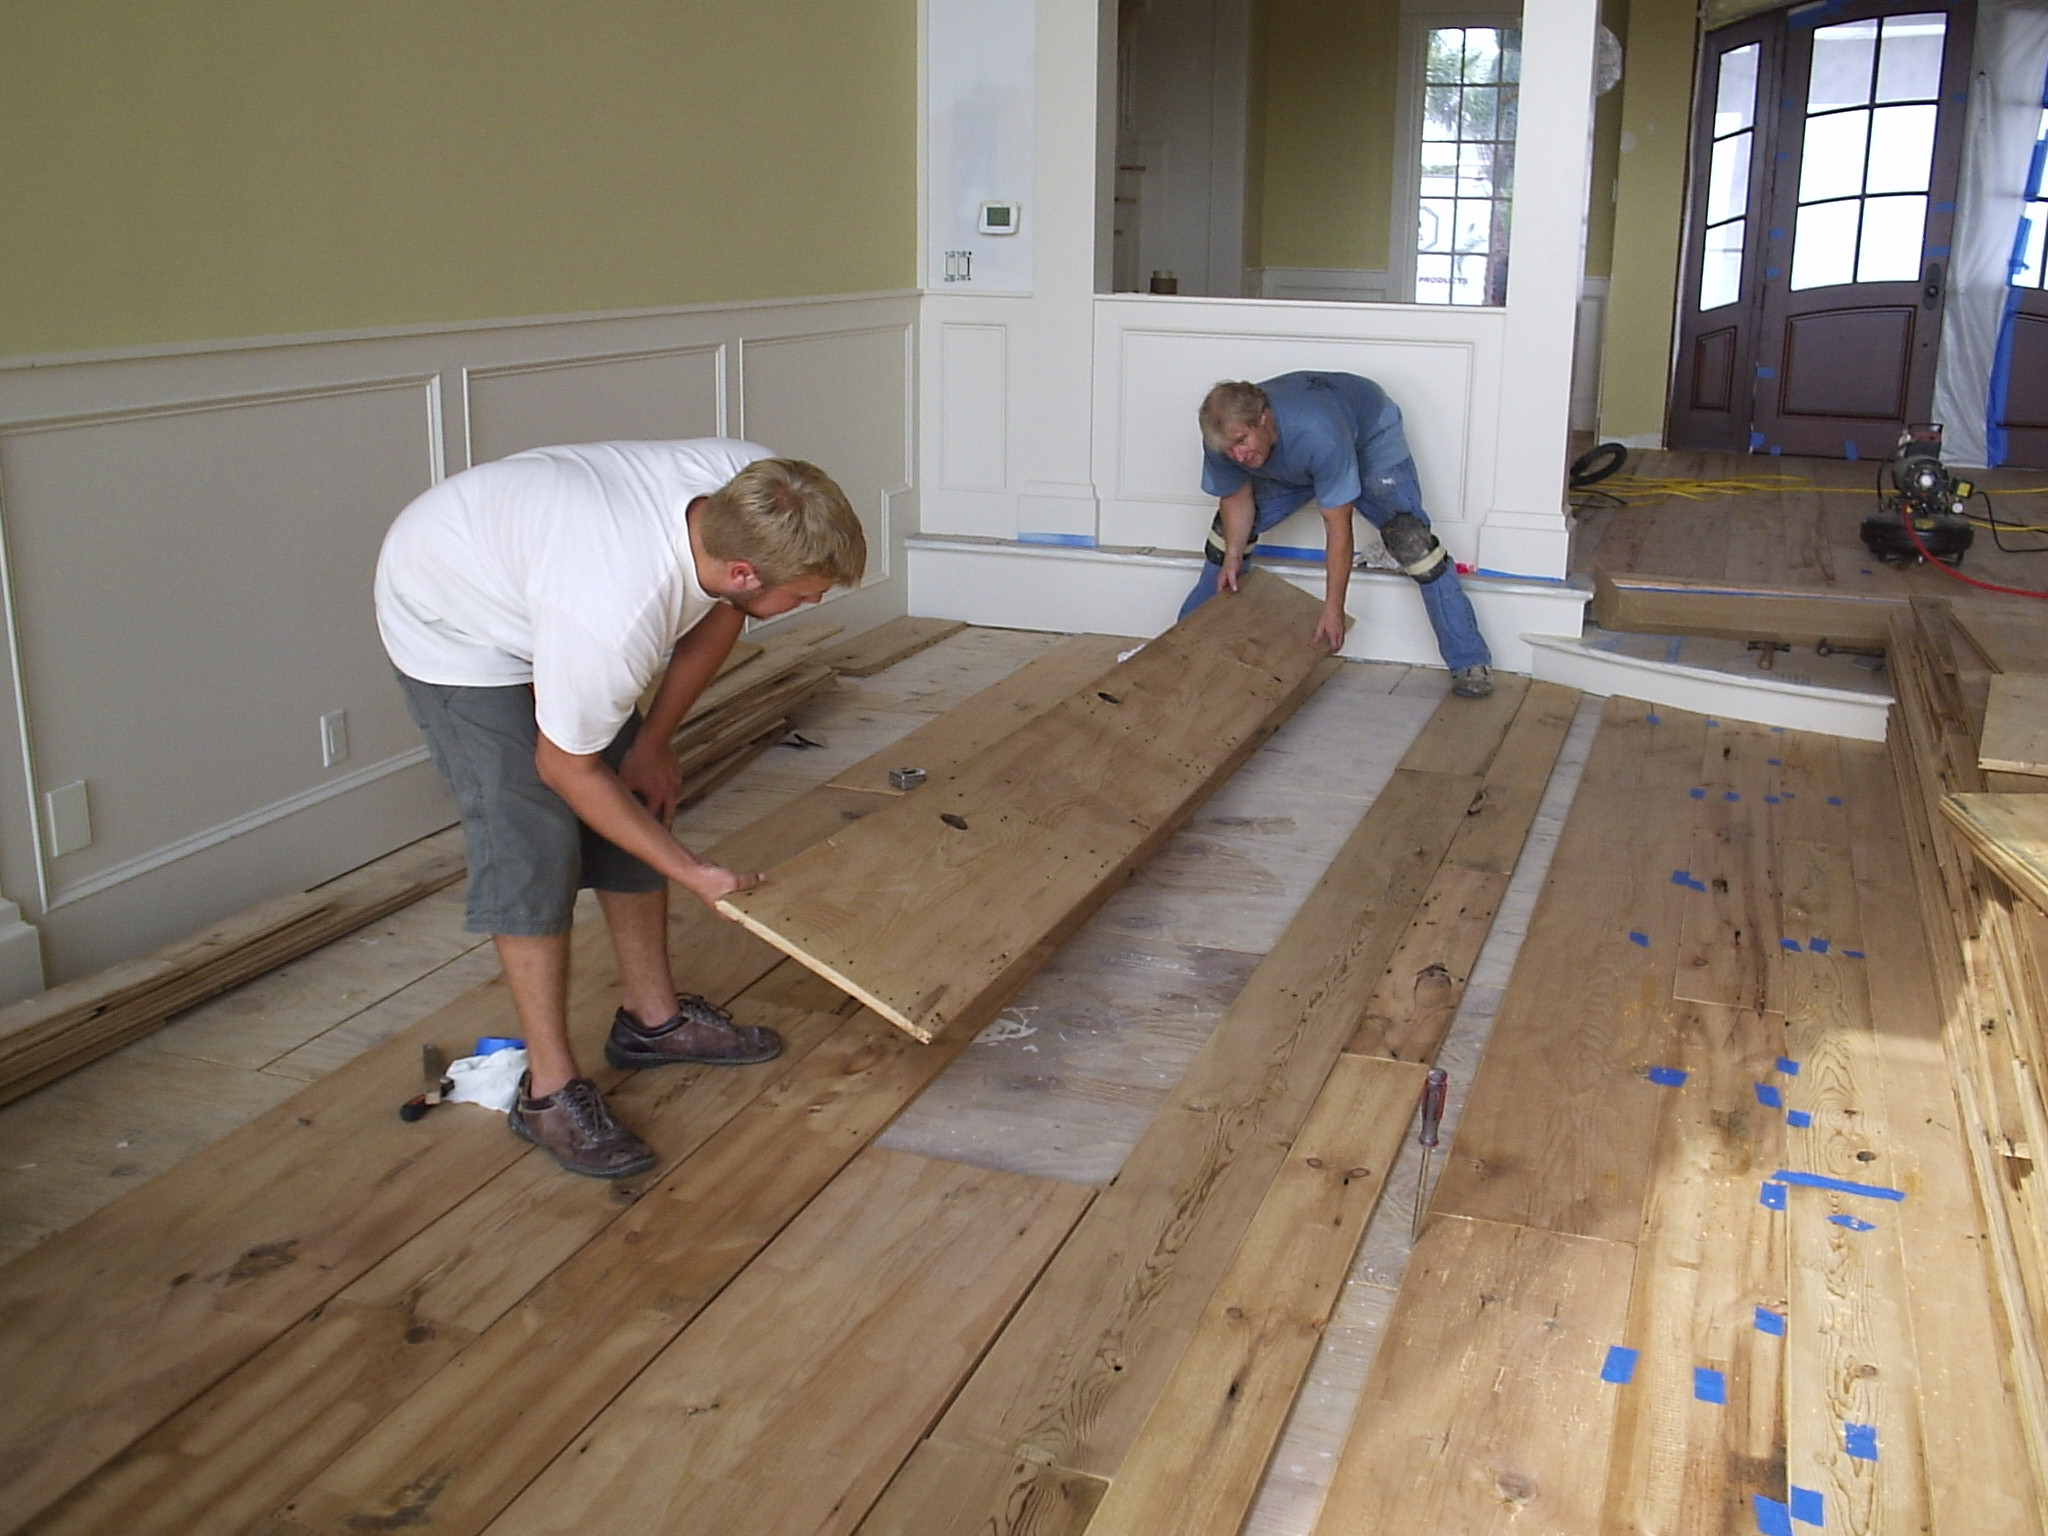 R.J. Bernath | Master Artisans of Hardwood Flooring